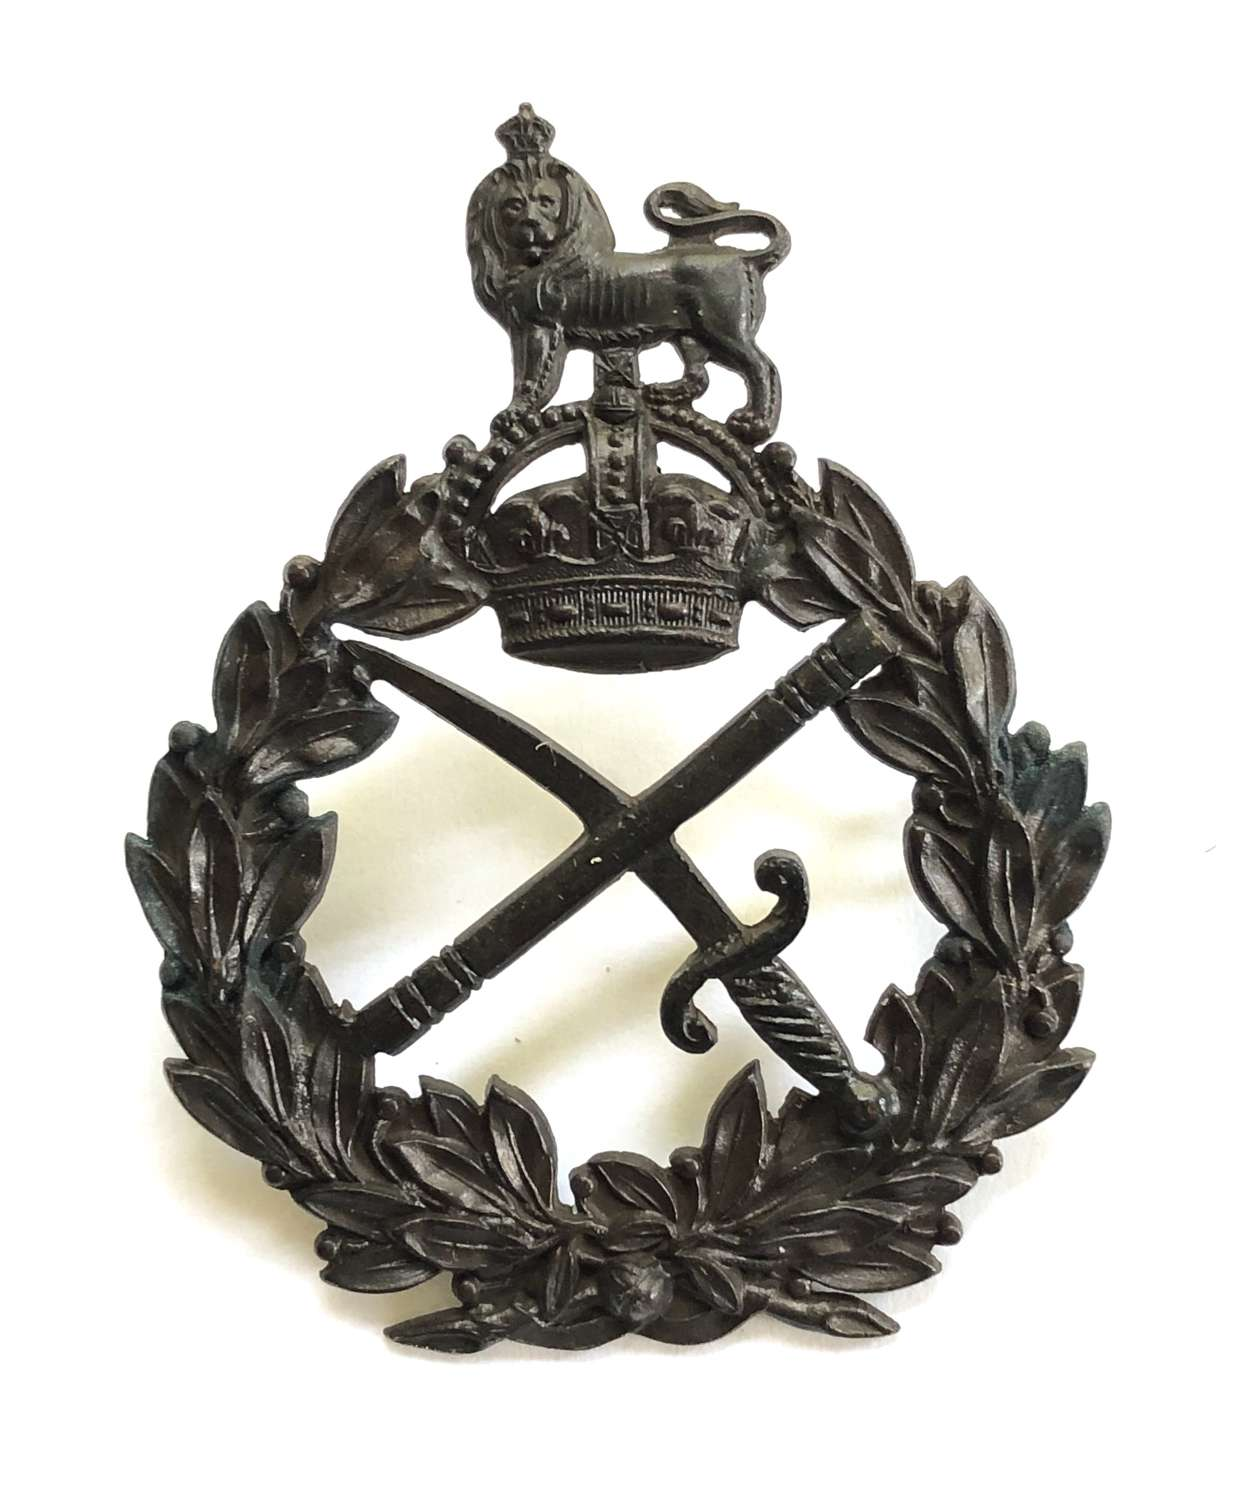 General Officer's post 1902 OSD cap badge